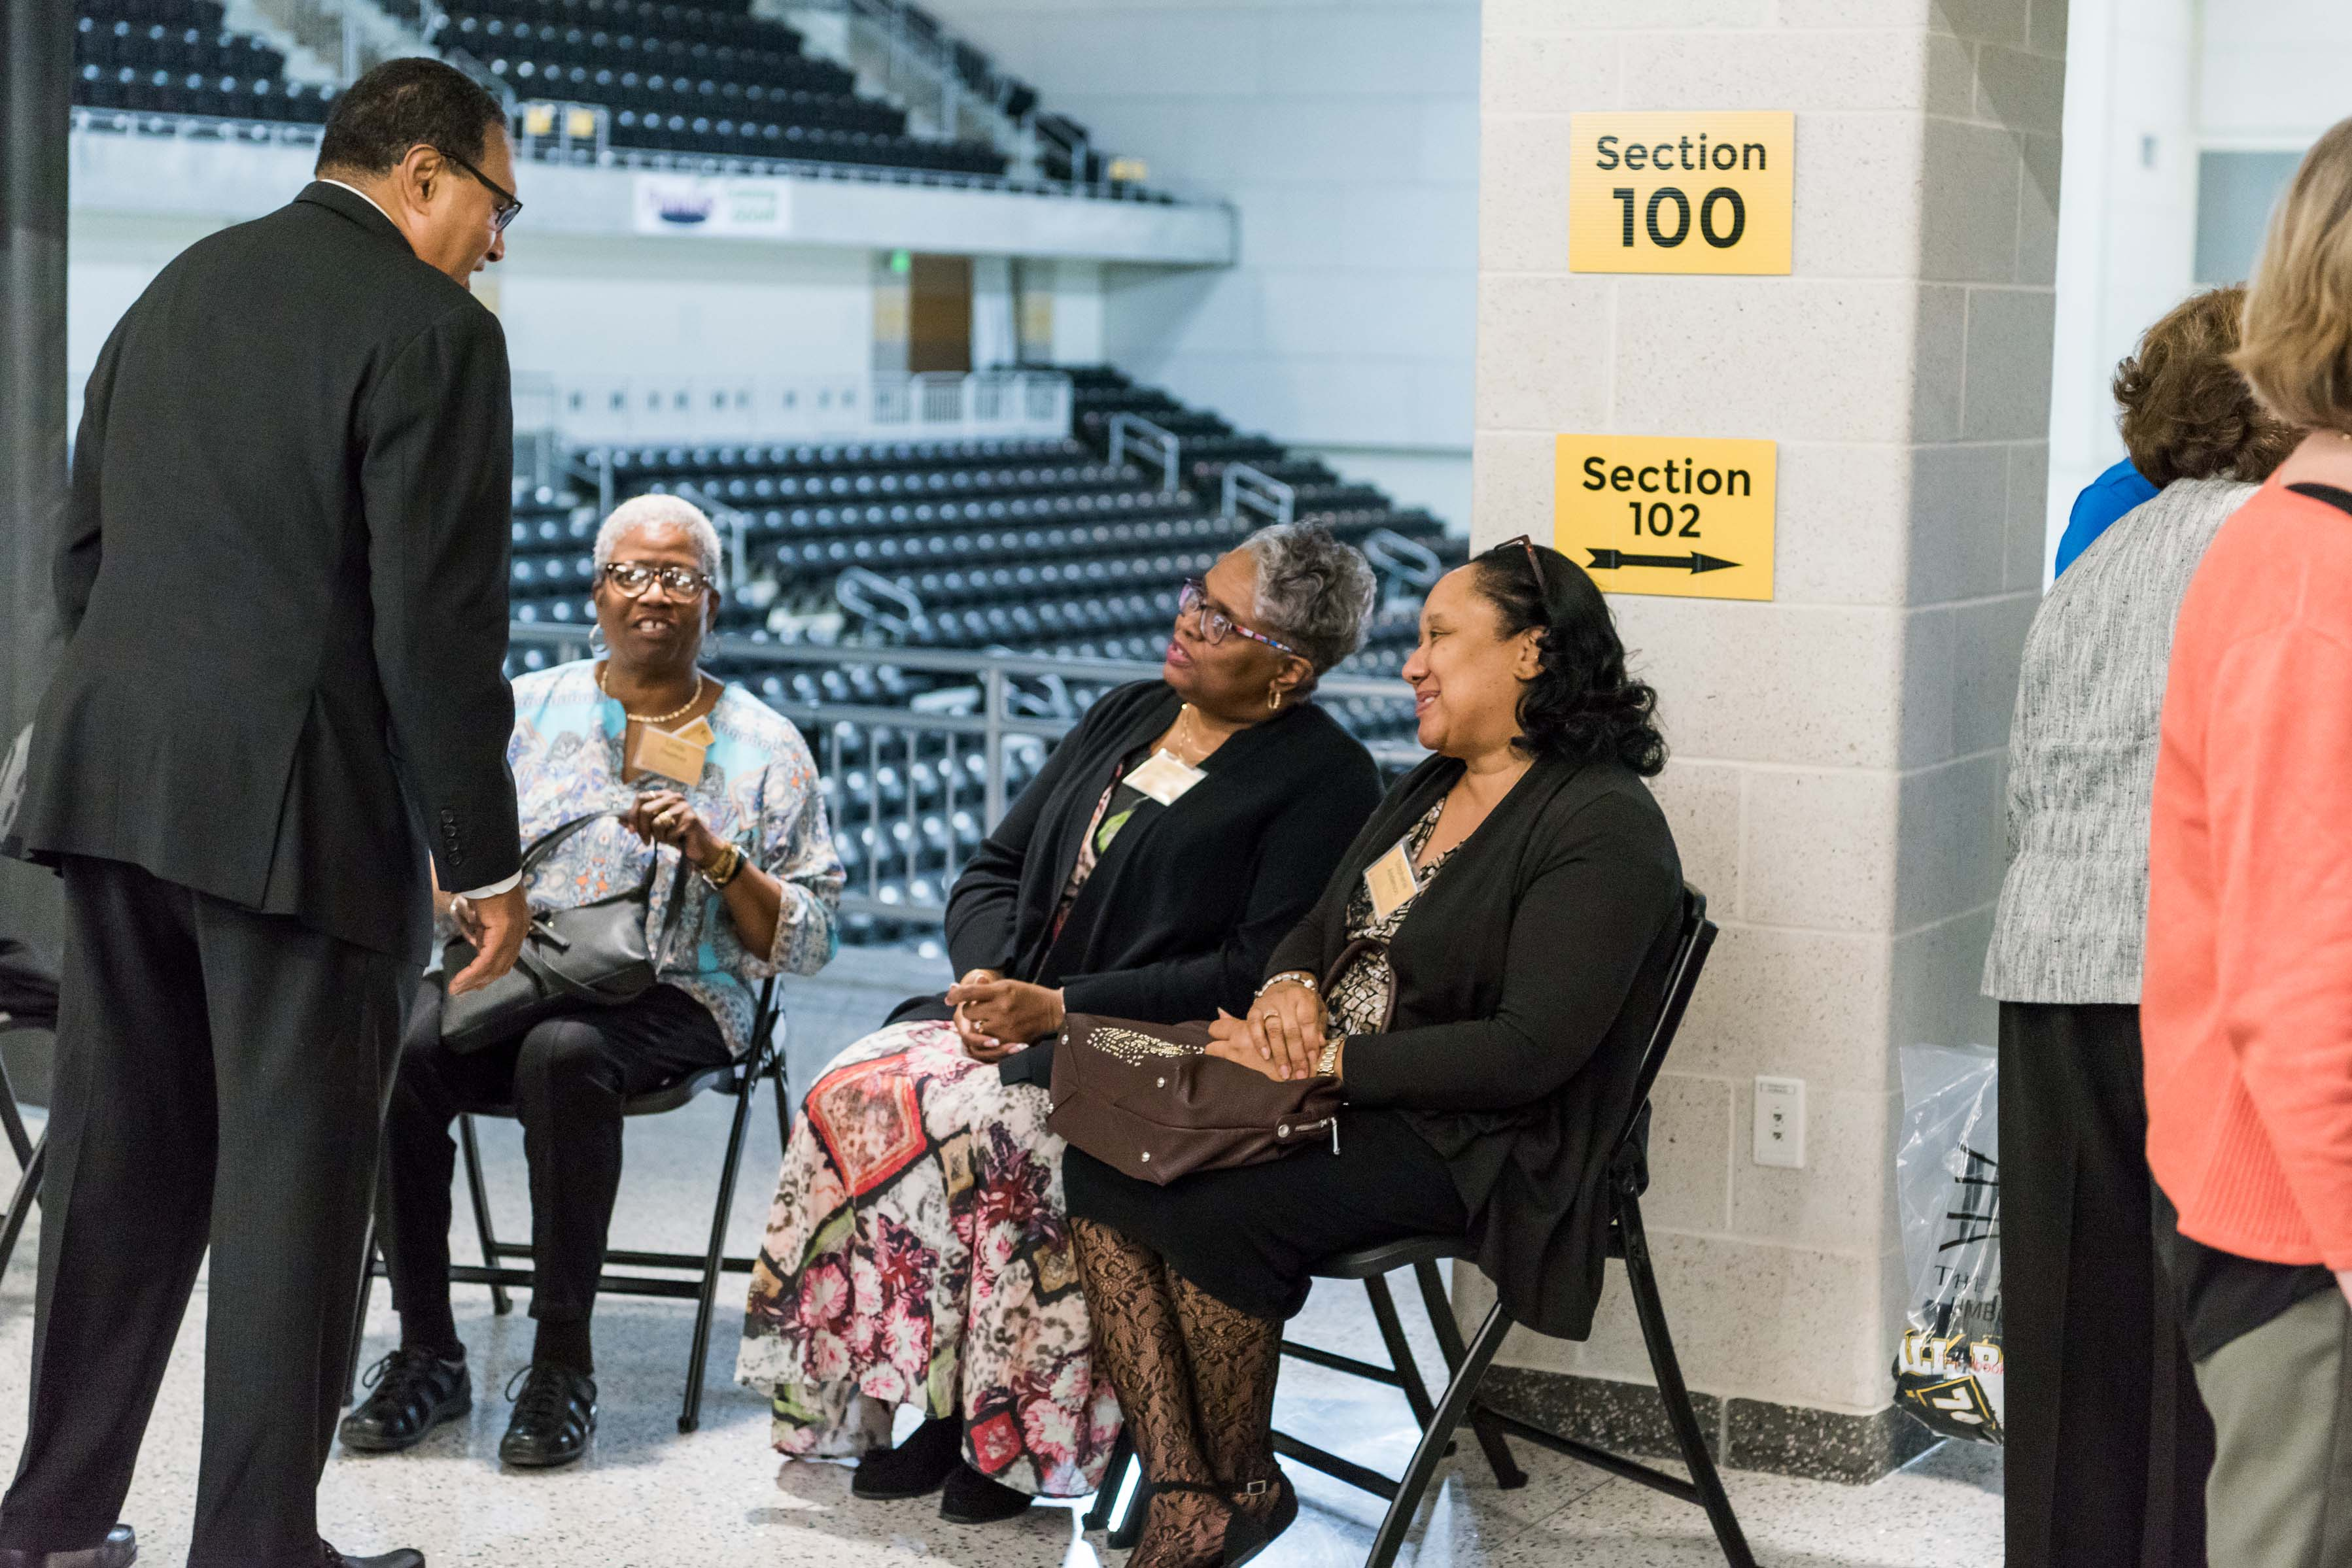 Hrabowski approaches women sitting at Wisdom Institute lunch